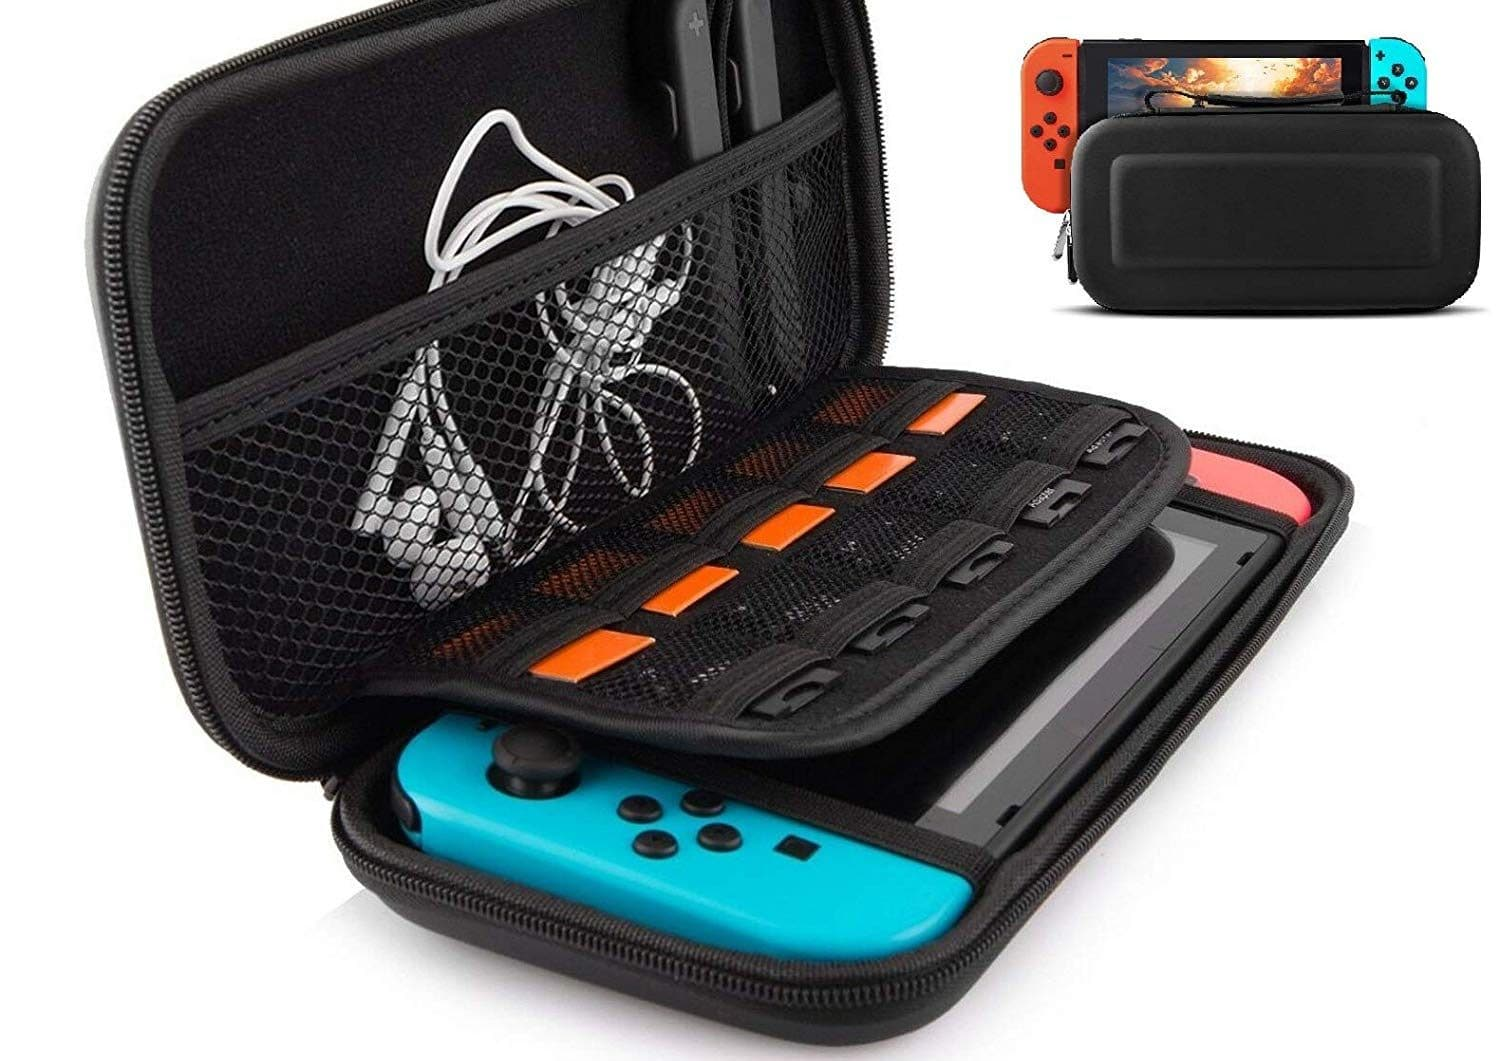 ihk nintendo switch carrying case